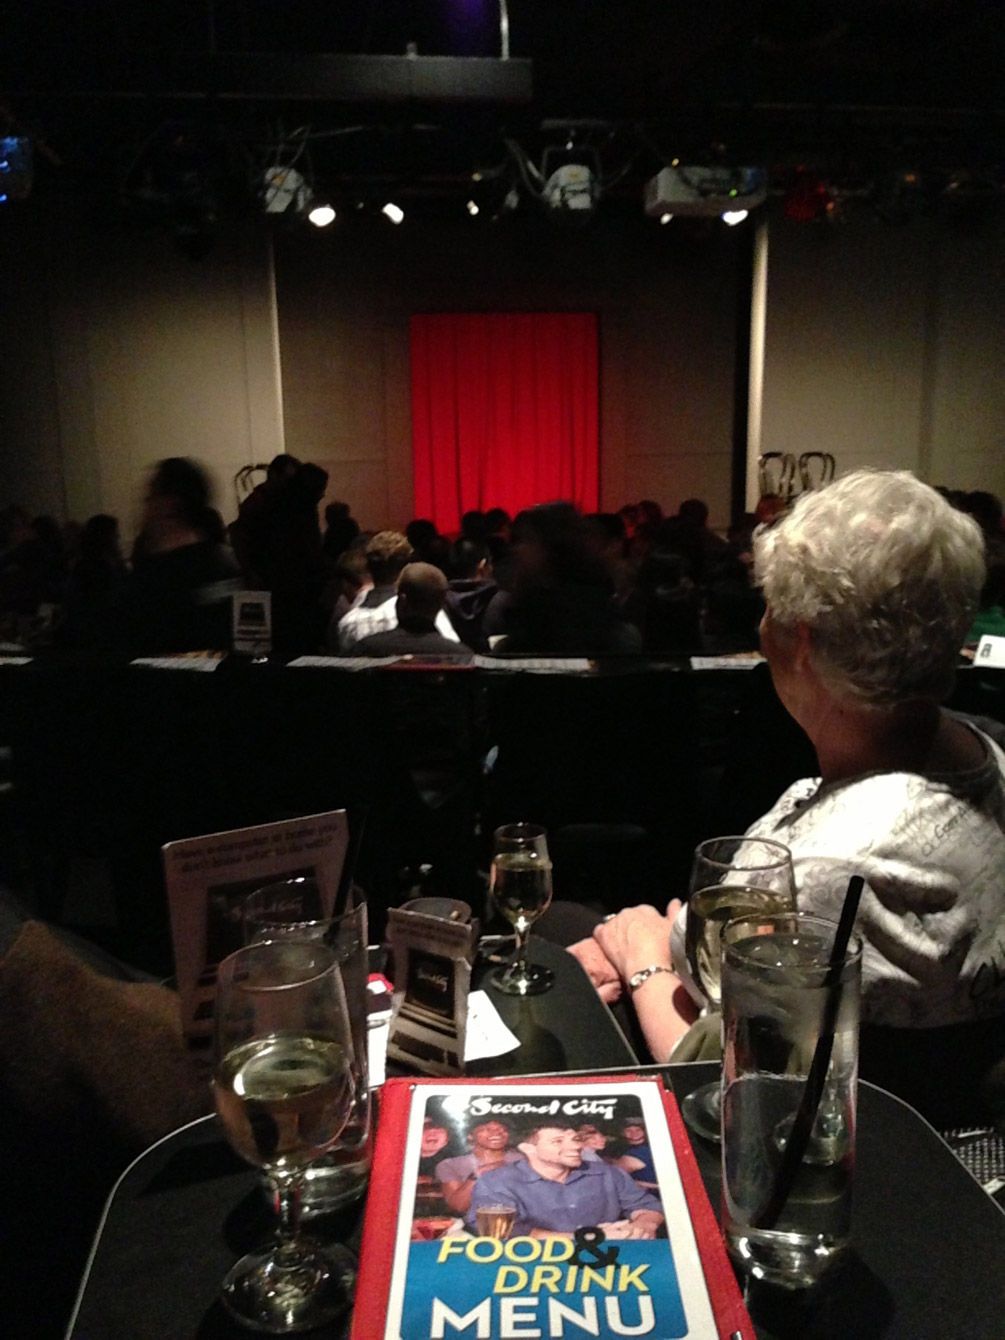 This famous comedy club was home to dozens of SNL alumni. The show did not disappoint.